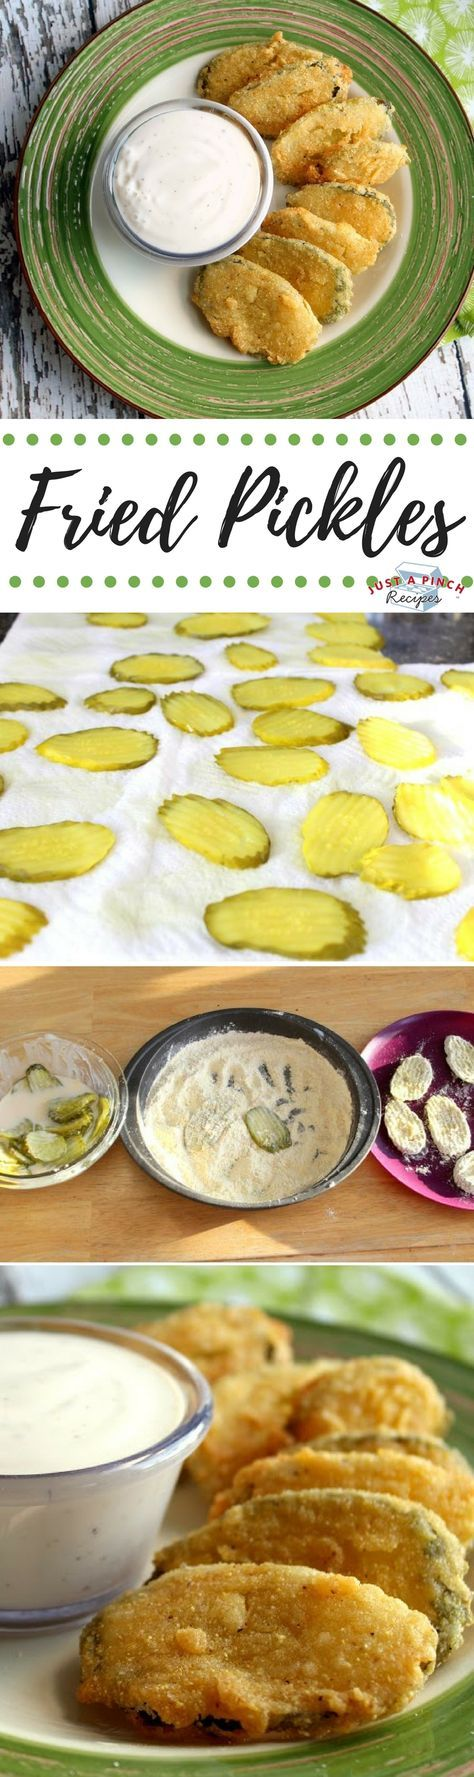 These fried pickle chips were tart, crunchy with just a hint of heat. They are easy to make and every pickle lover will eat them up. Yum! We love homemade fried pickles, aka frickles!!